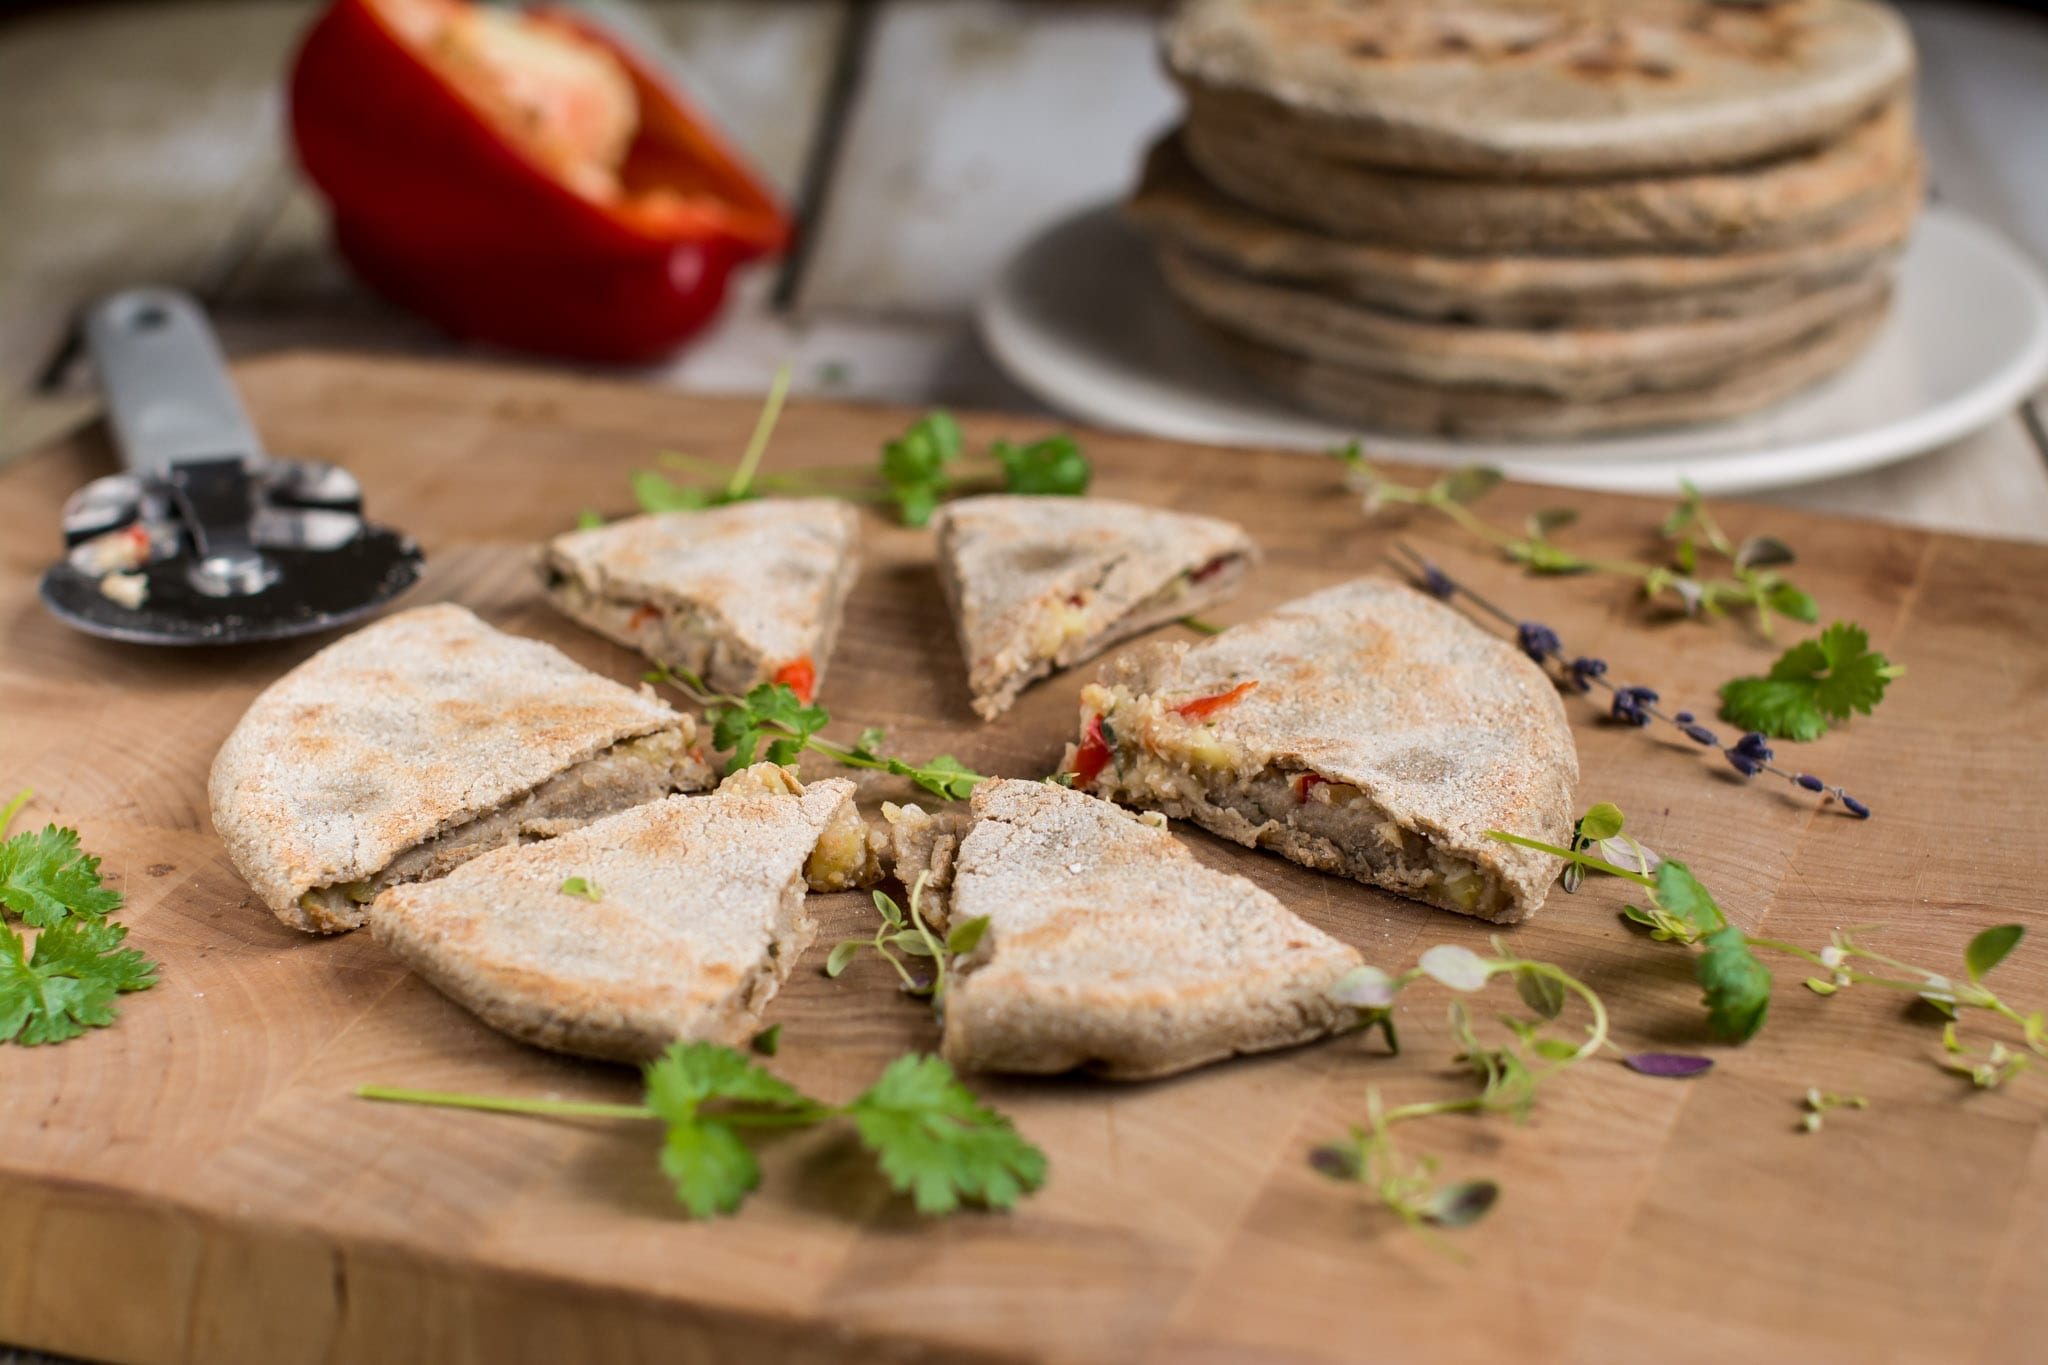 Parathas, Potato-Cauliflower Stuffed Flatbread